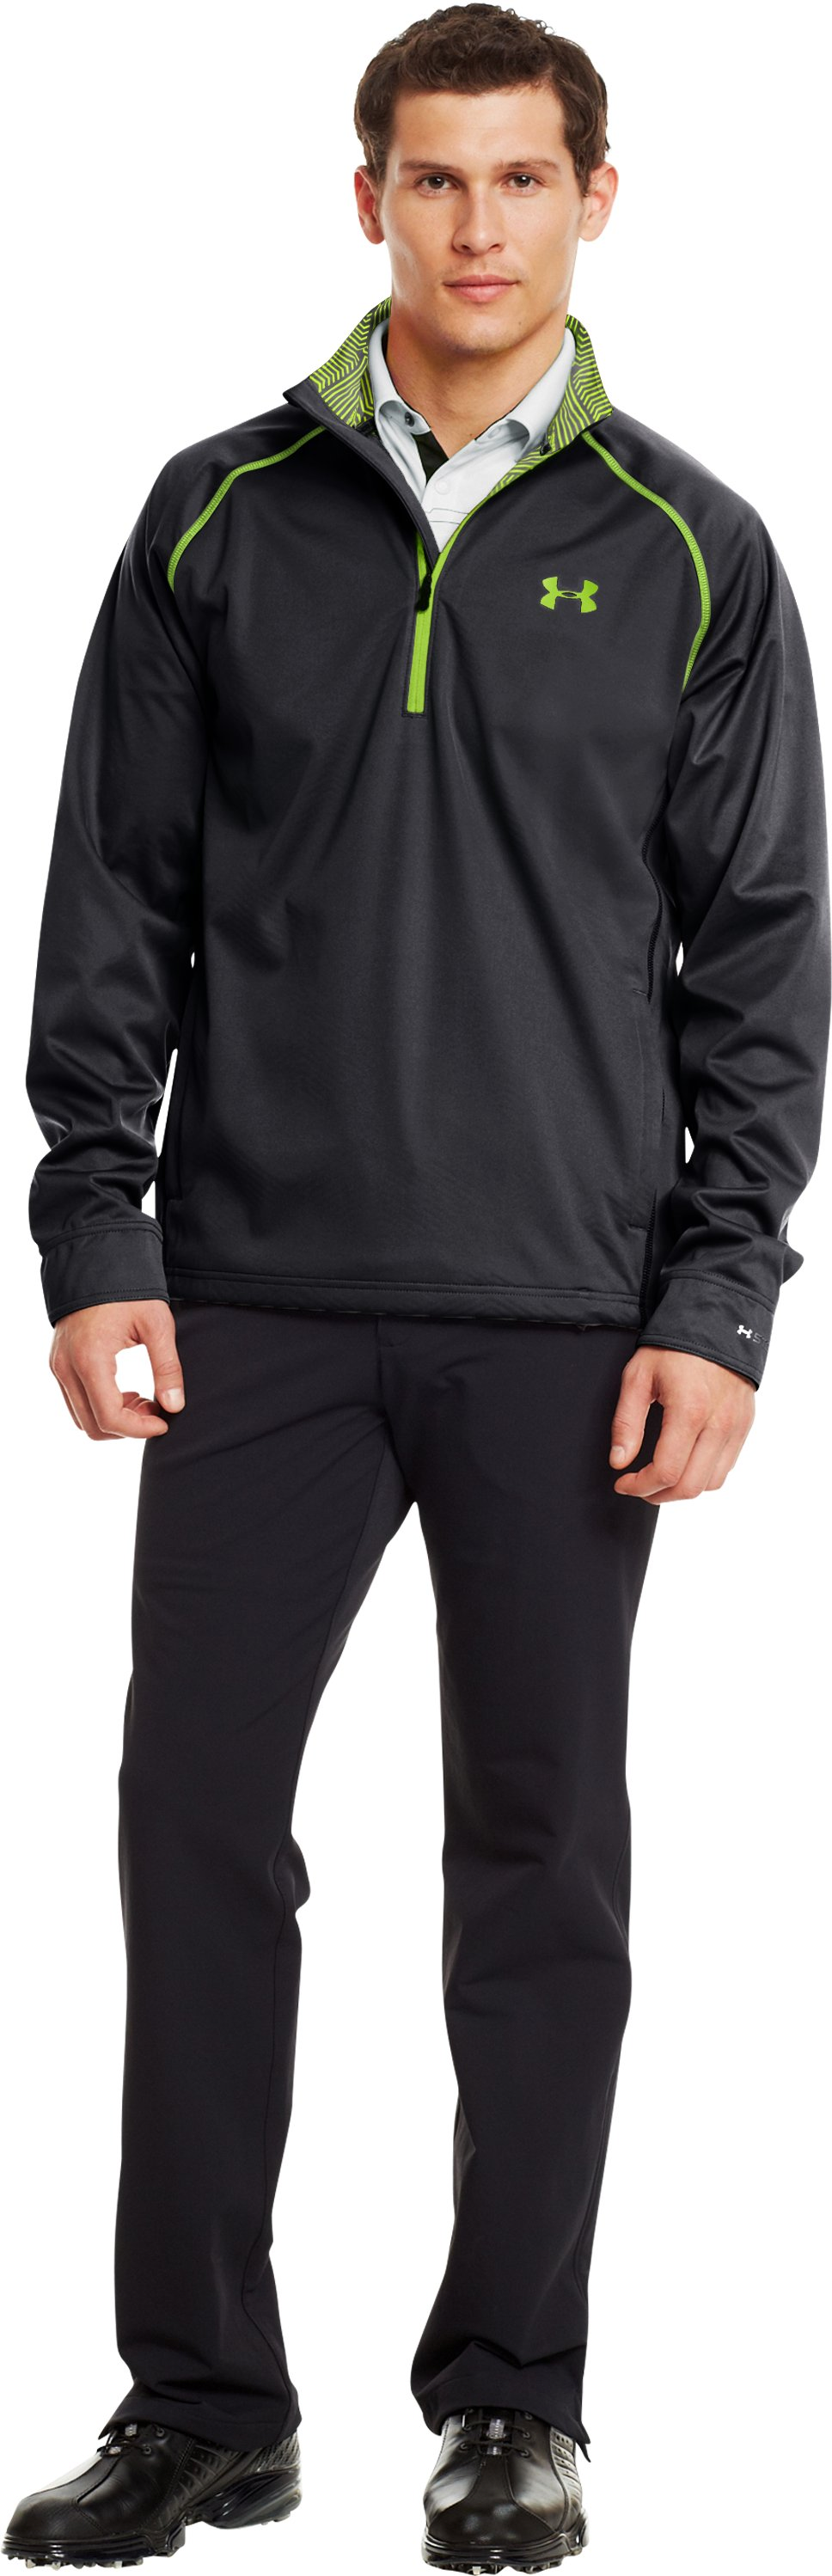 Men's ColdGear® Infrared Elements Storm ½ Zip Jacket, Black